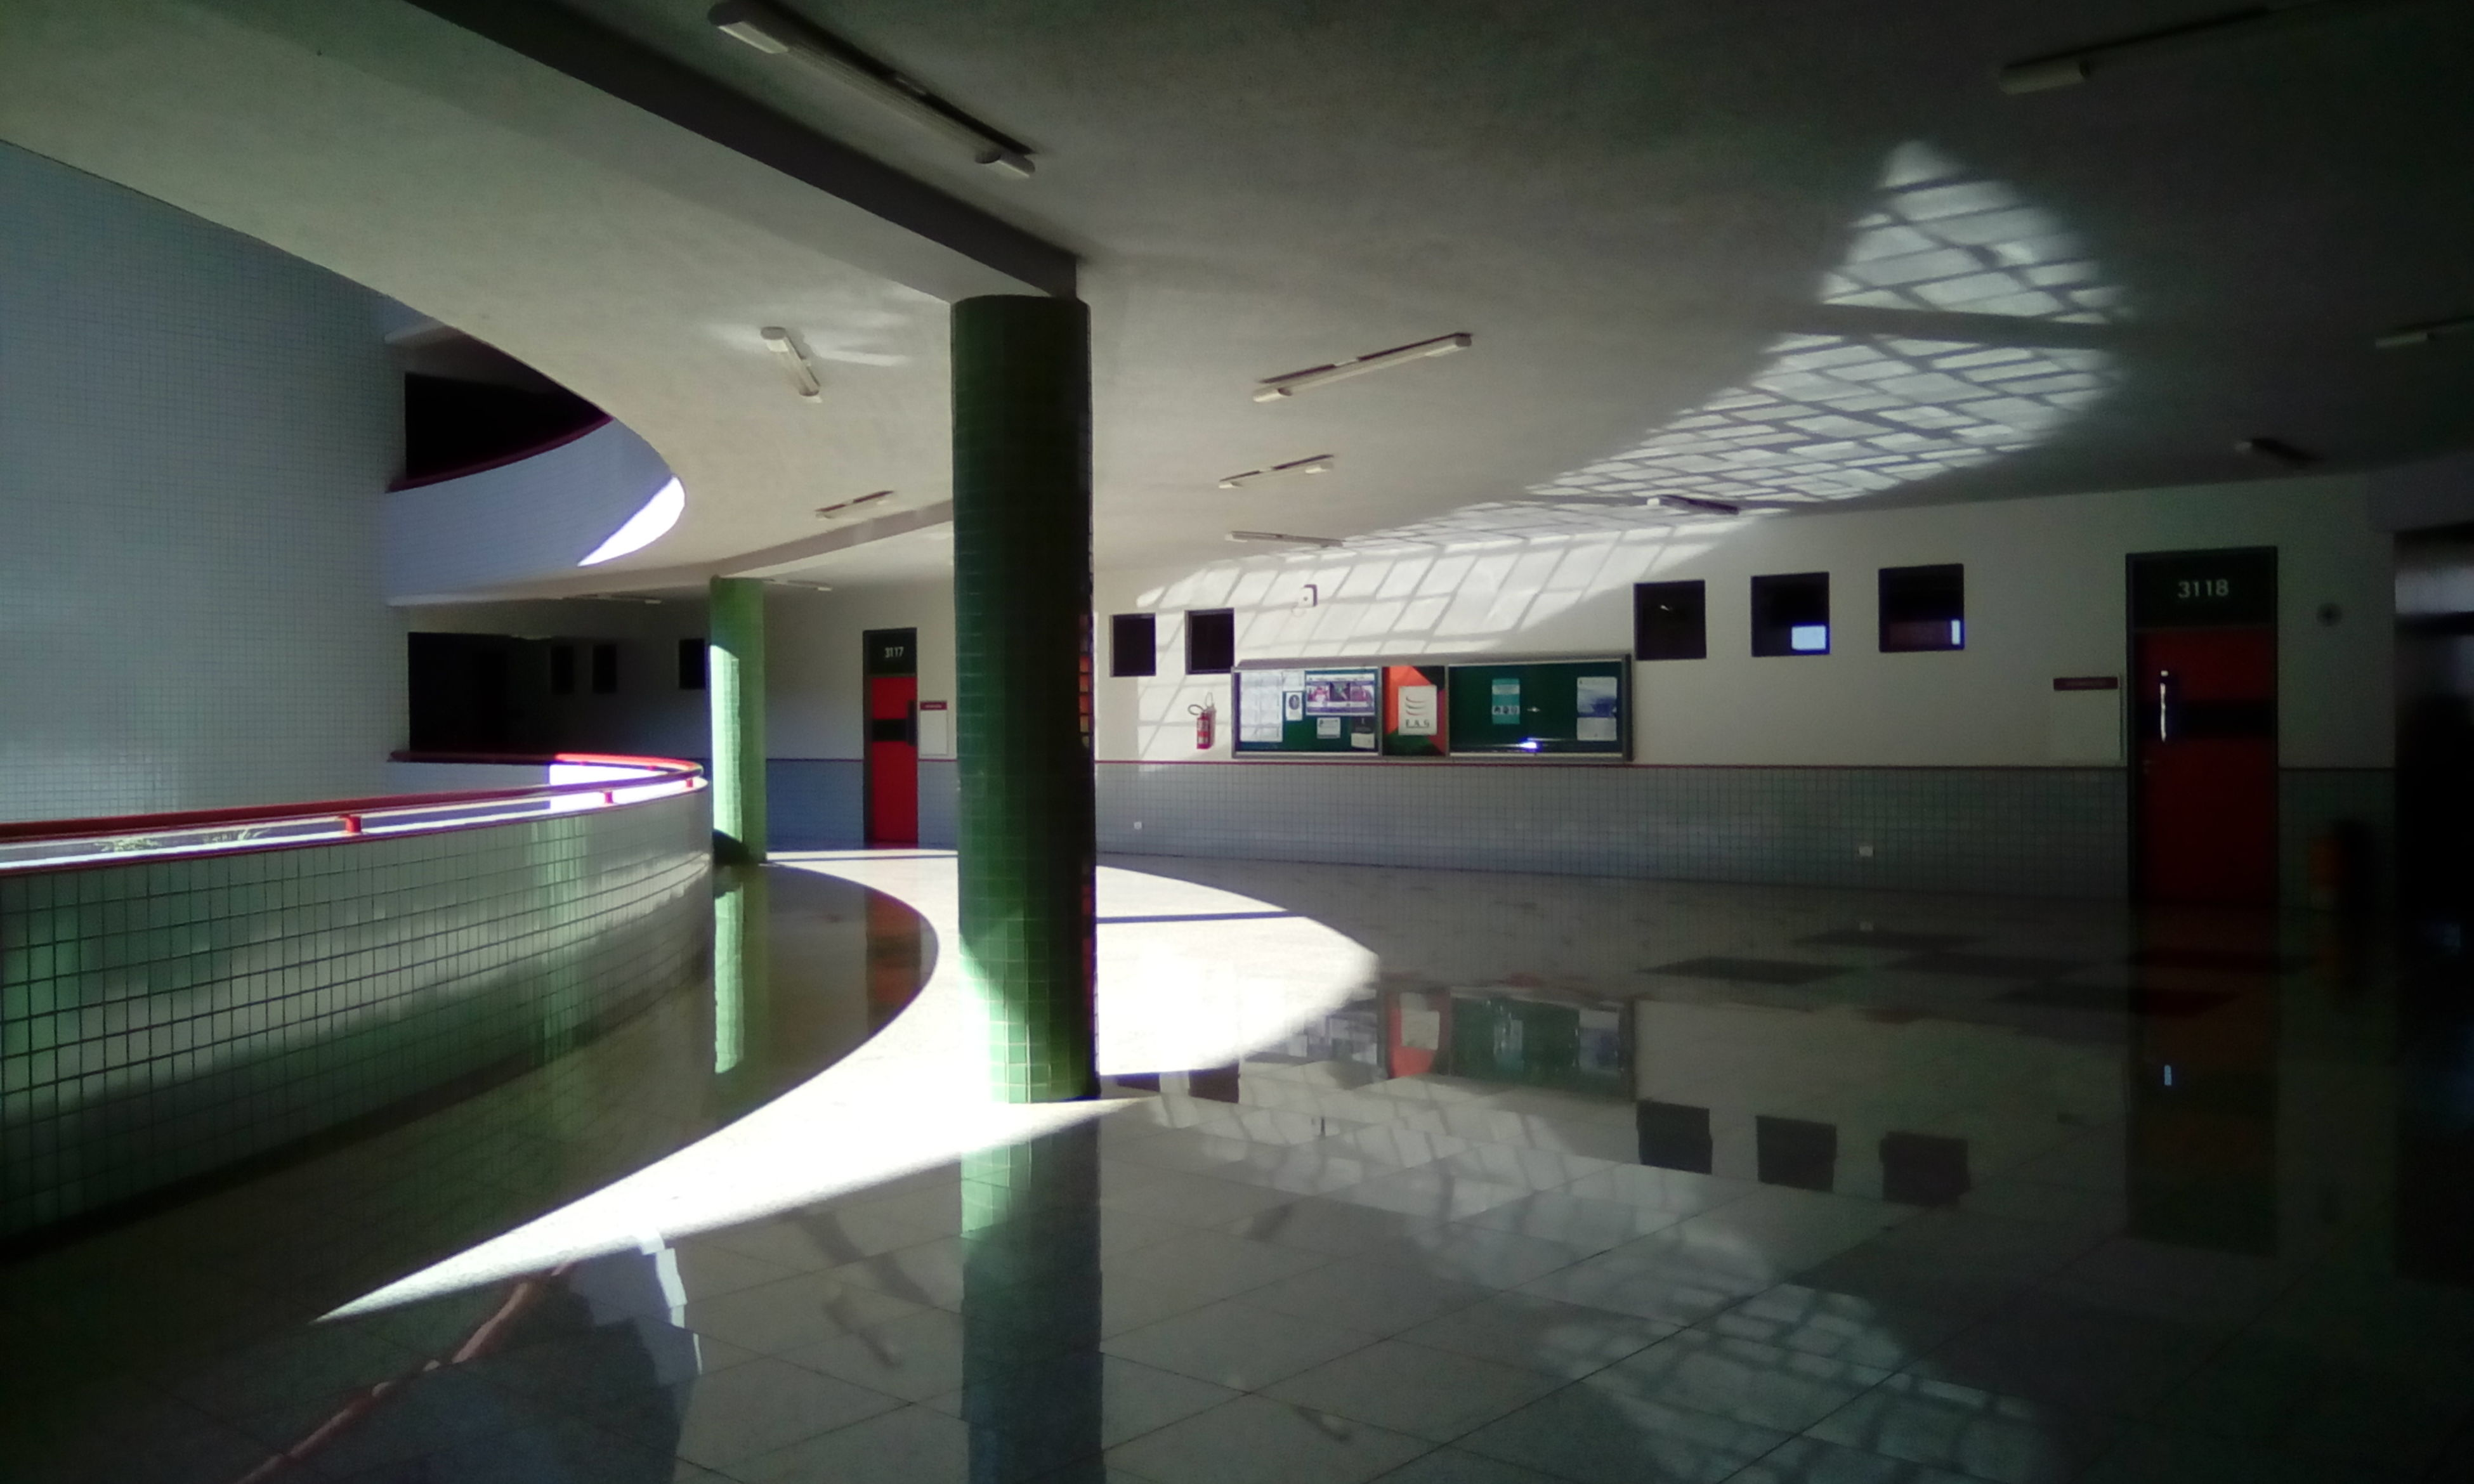 built structure, architecture, indoors, no people, illuminated, day